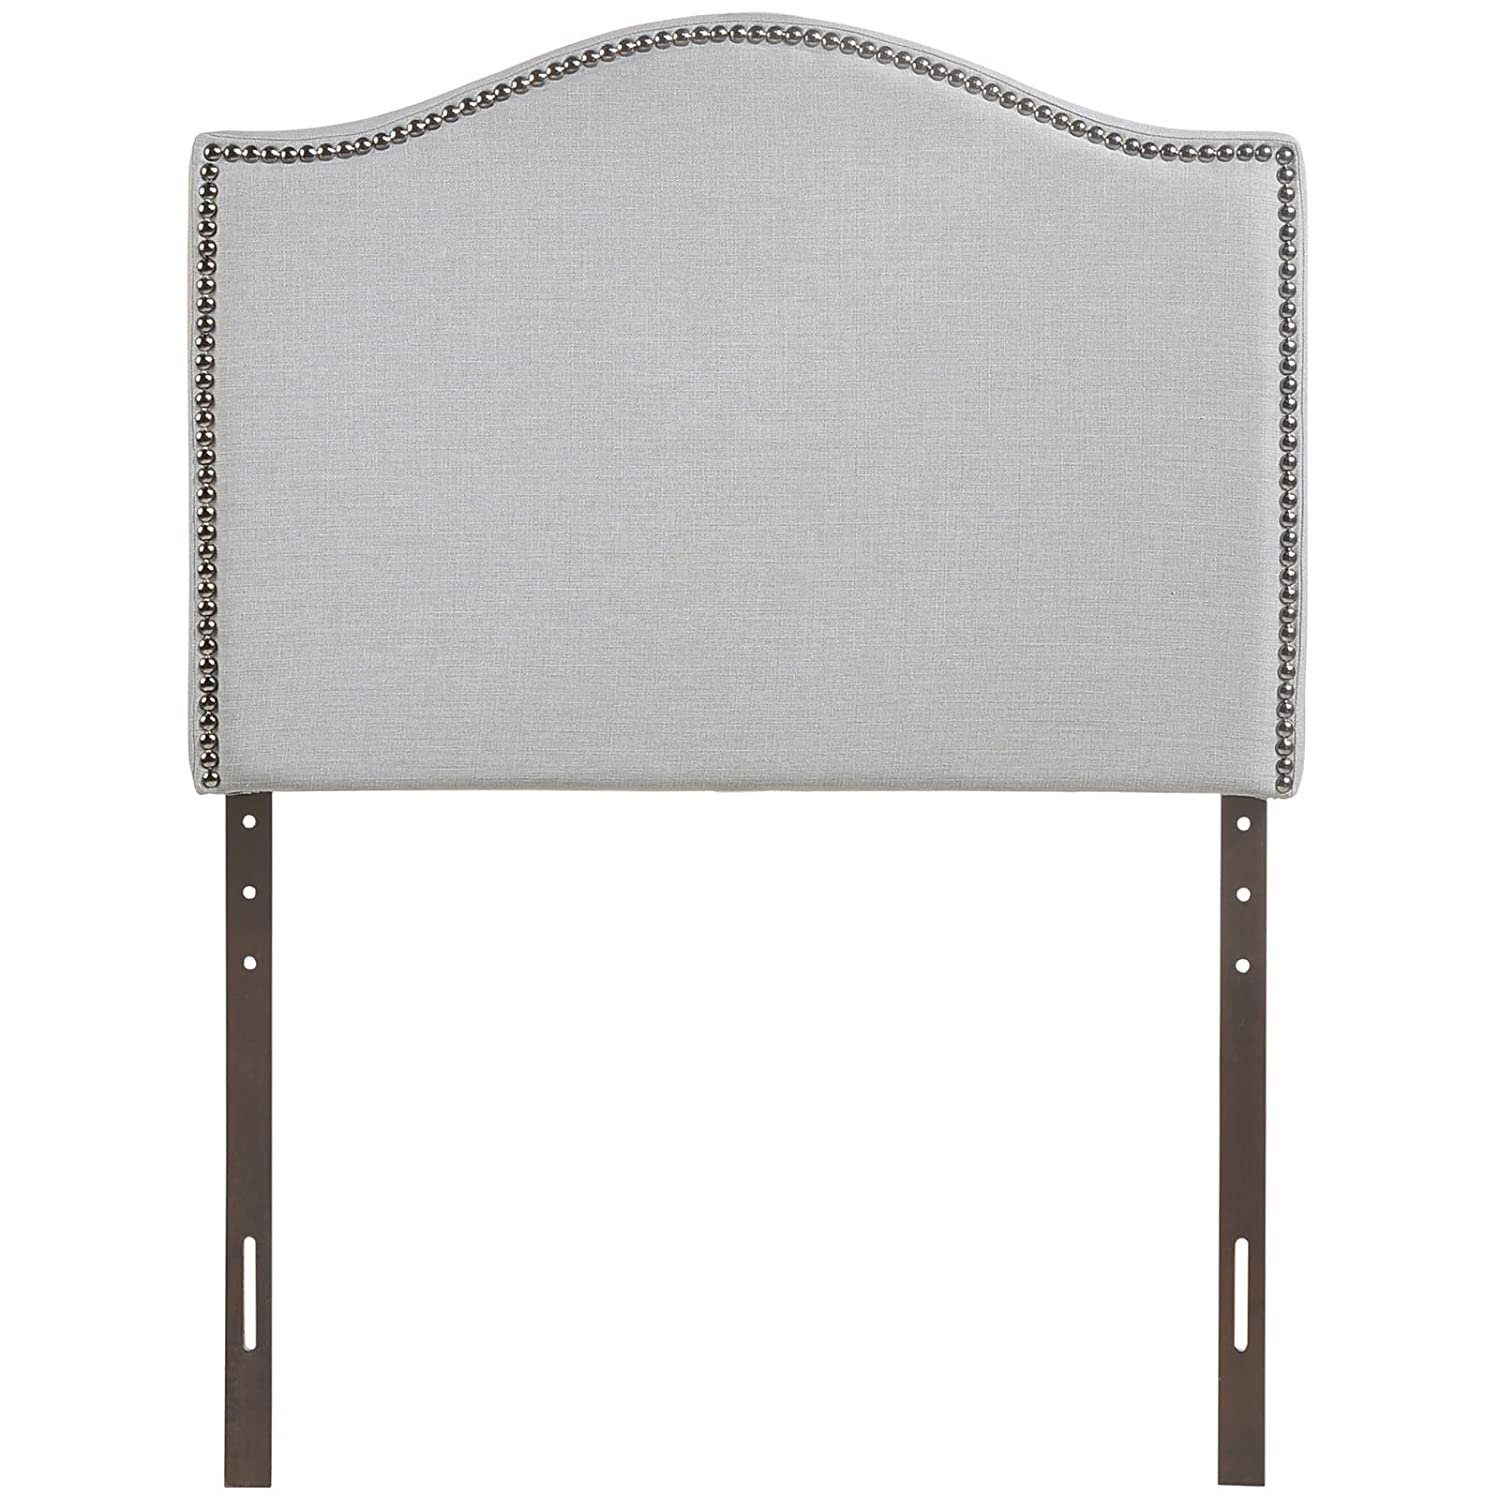 Amazon.com: Modway Curl Upholstered Linen Headboard With Nailhead ...